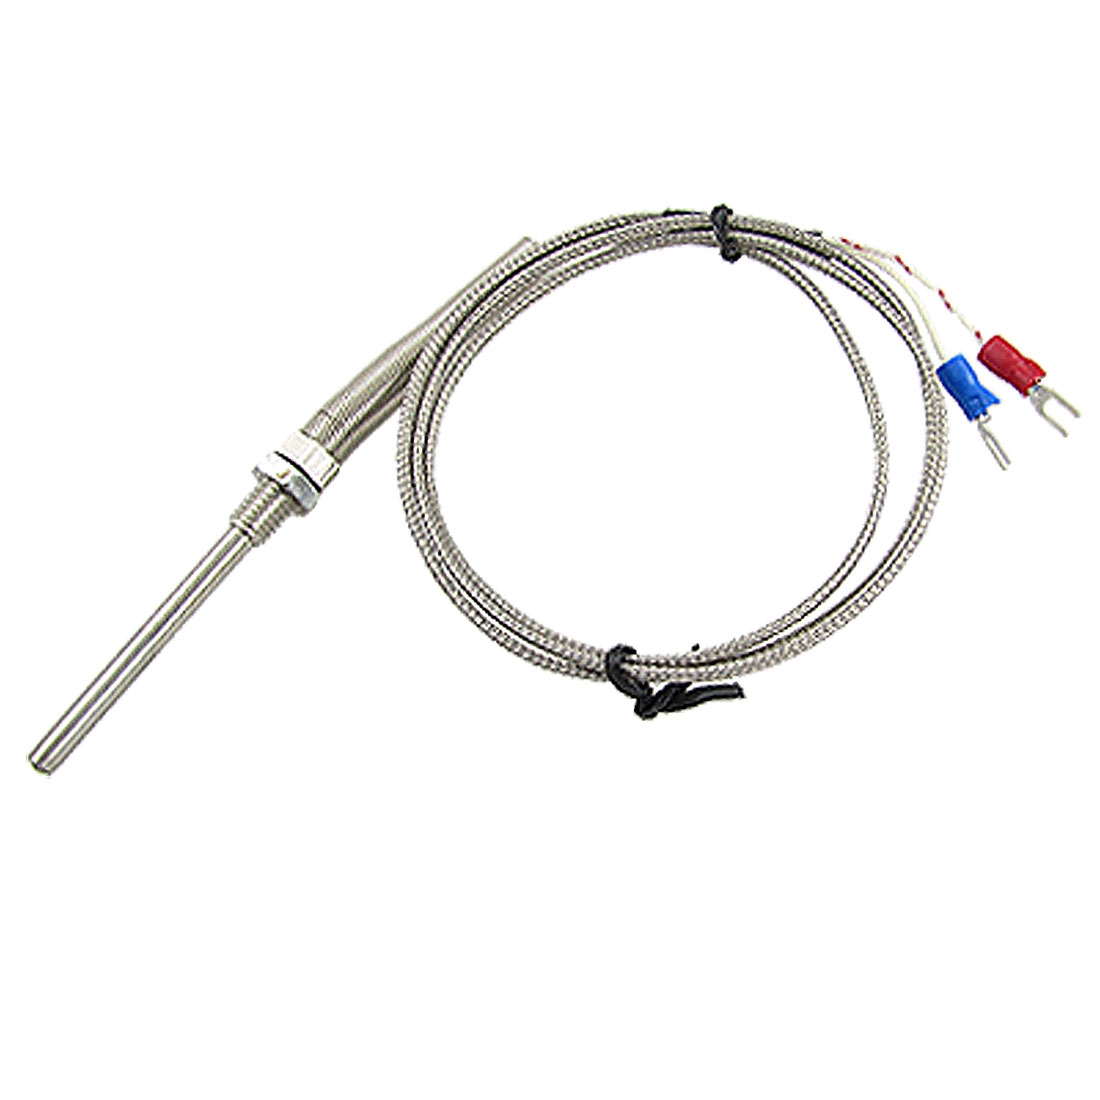 0-400 Degree Celsius K Type Thermocouple Sensor Probe 1M